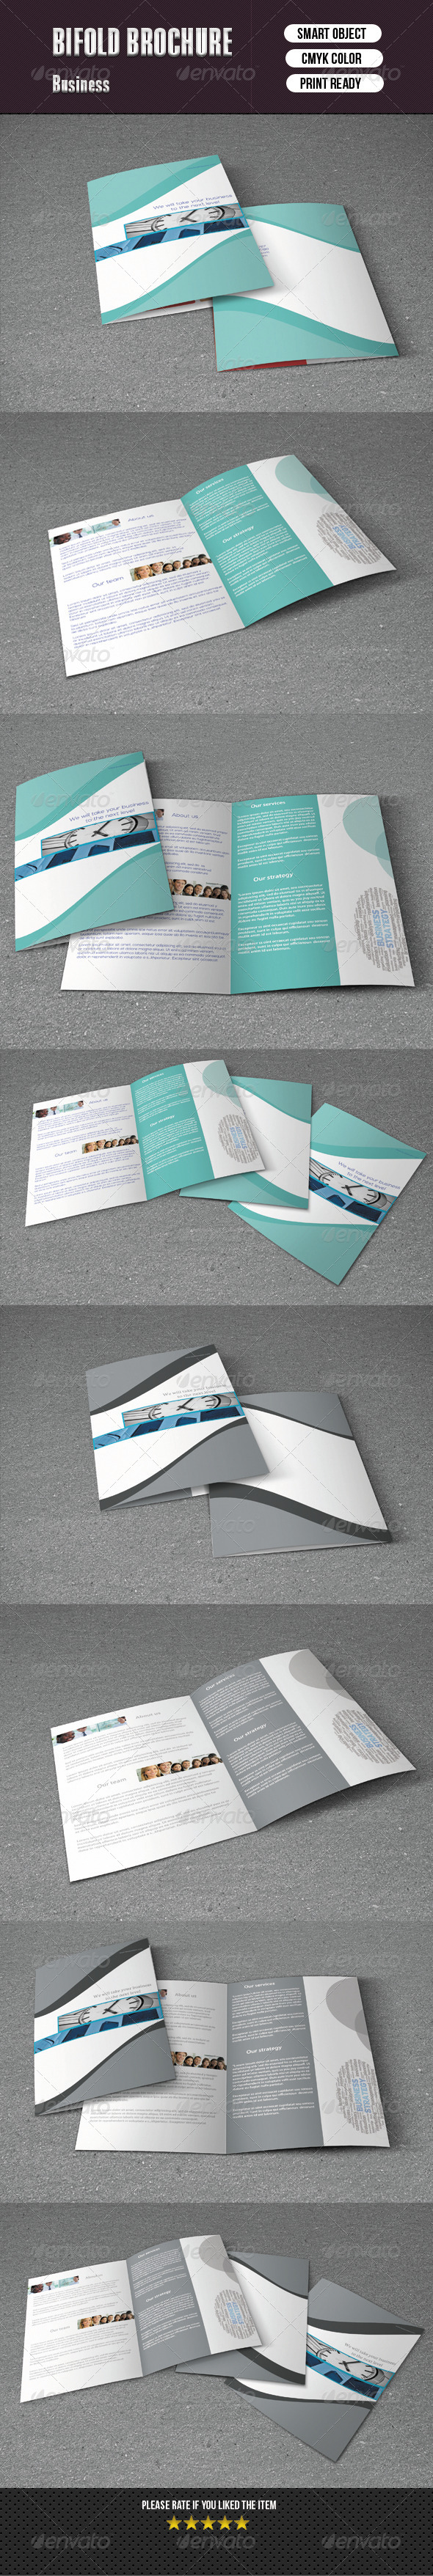 GraphicRiver Bifold Brochure For Business 2 Color Version 5955900